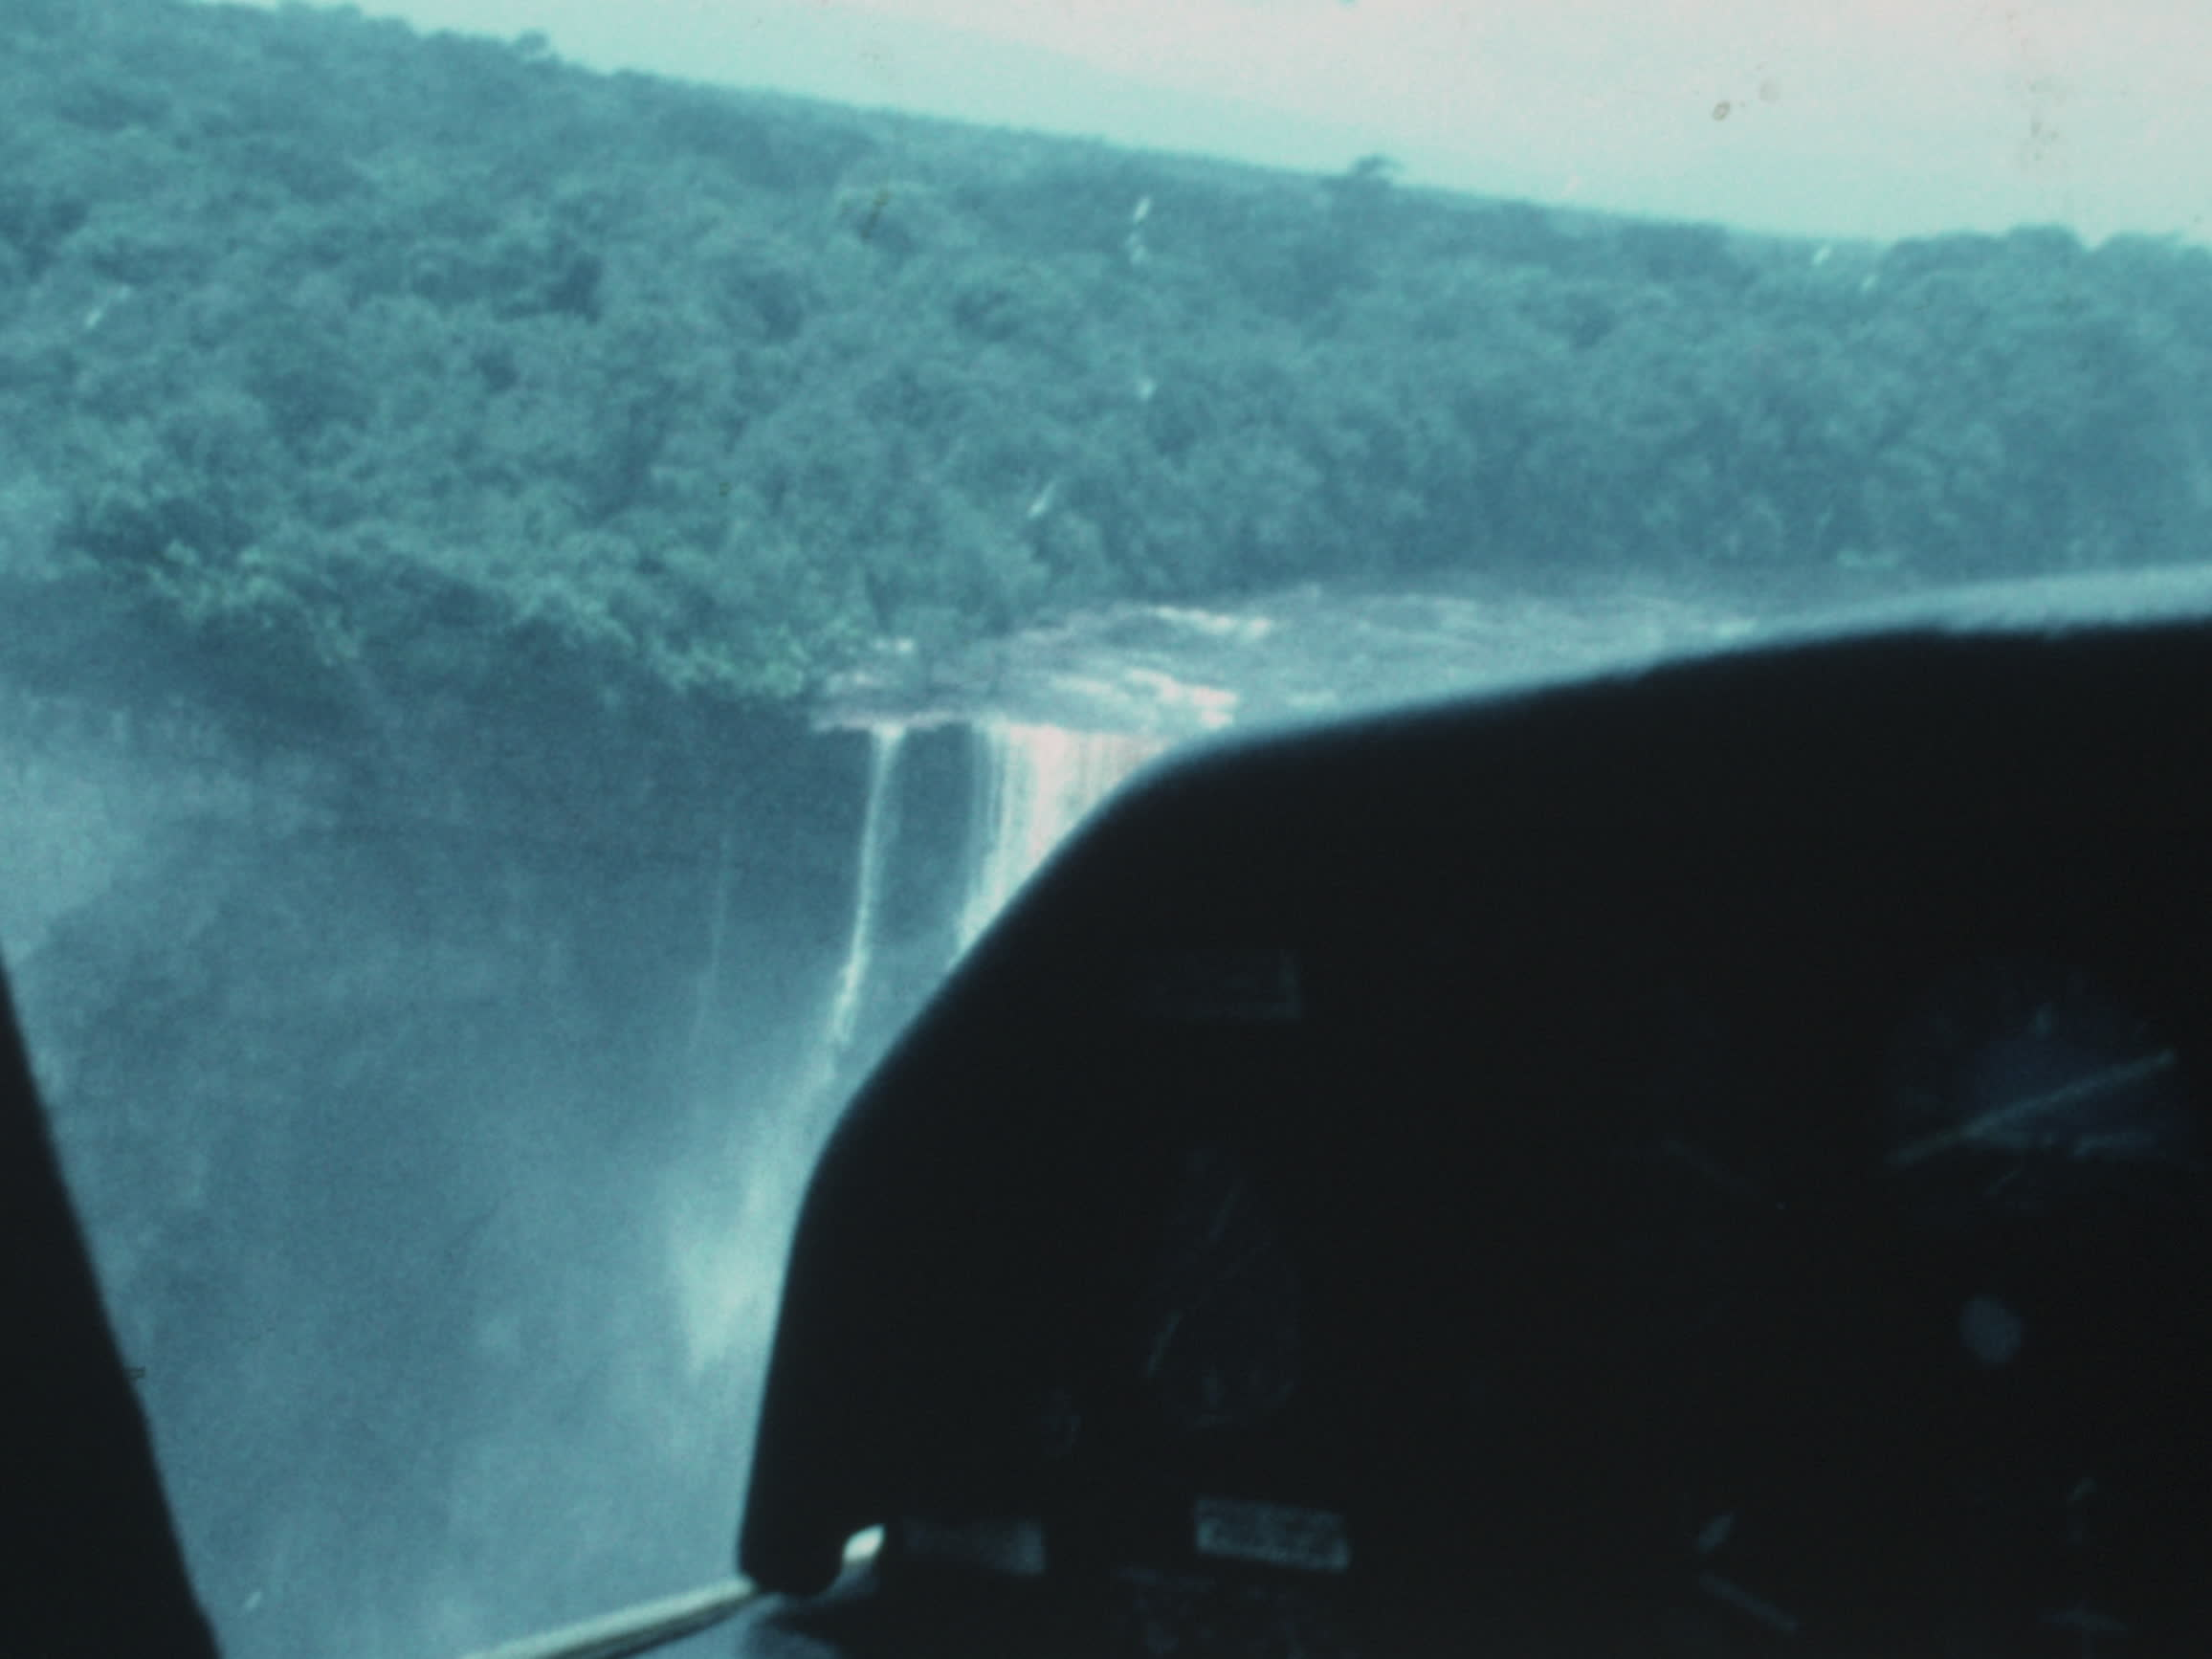 Baksh family videos : Kaieteur Falls plane ride